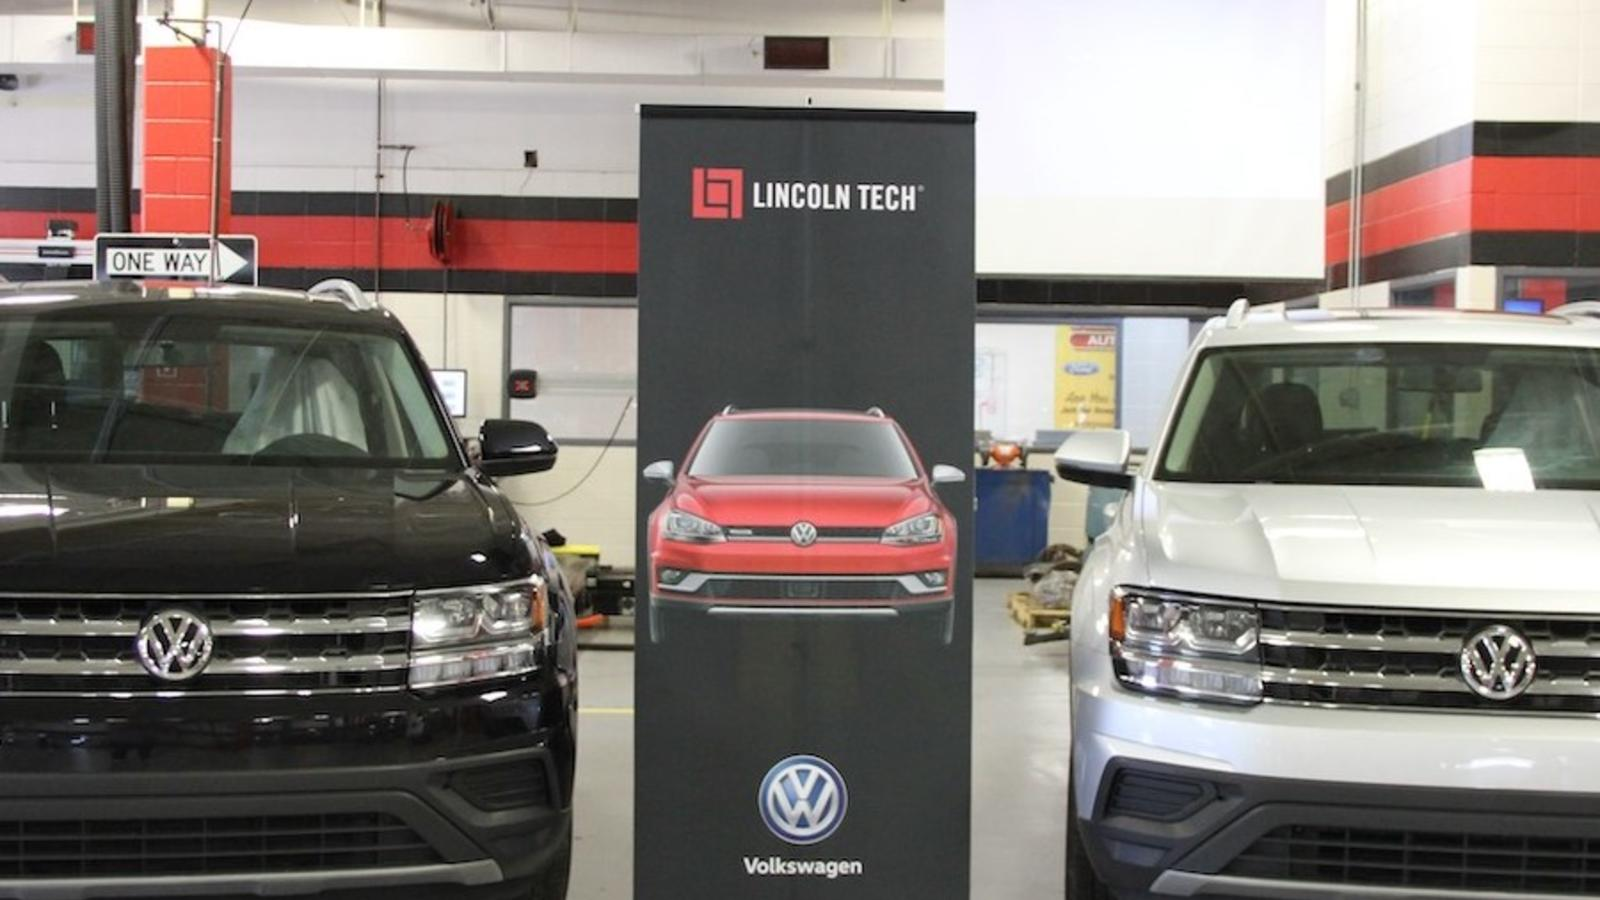 Two 2020 VW Atlas SUVs. Students in Lincoln Tech's Mahwah NJ automotive training program with VW specialty